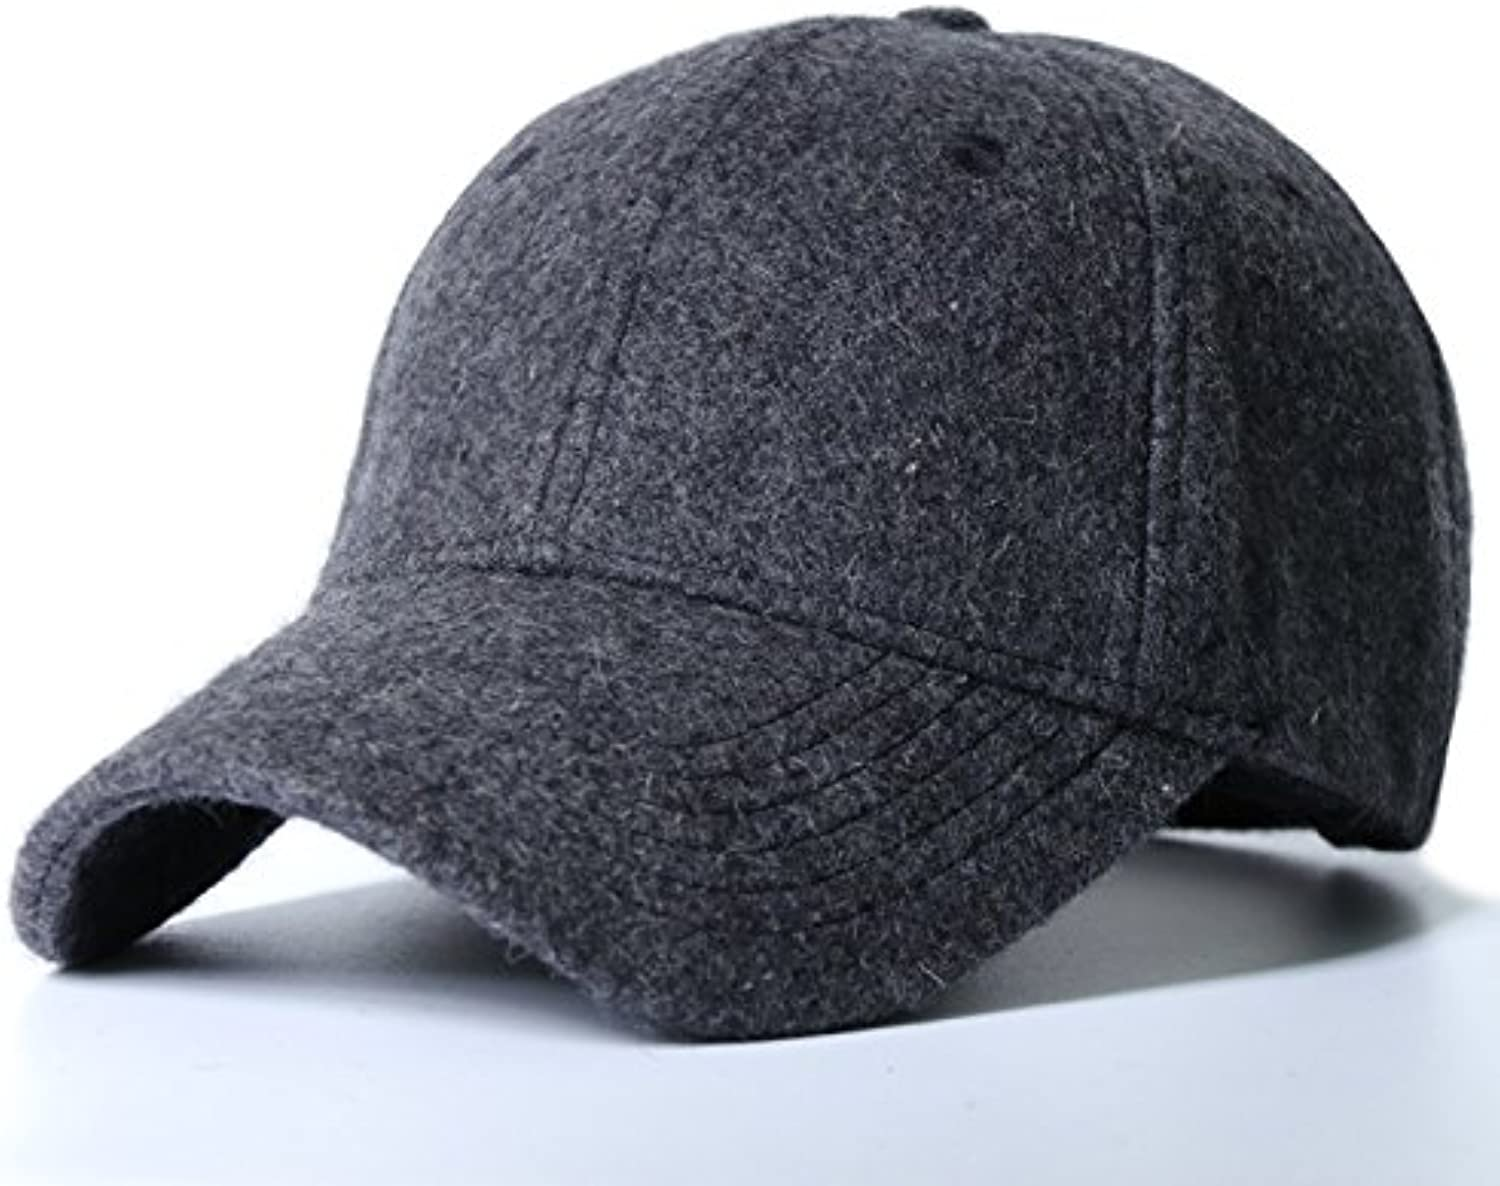 GUYOULY Winter Head Baseball Cap Thick Winter Warm Hat Male Large Size Cap